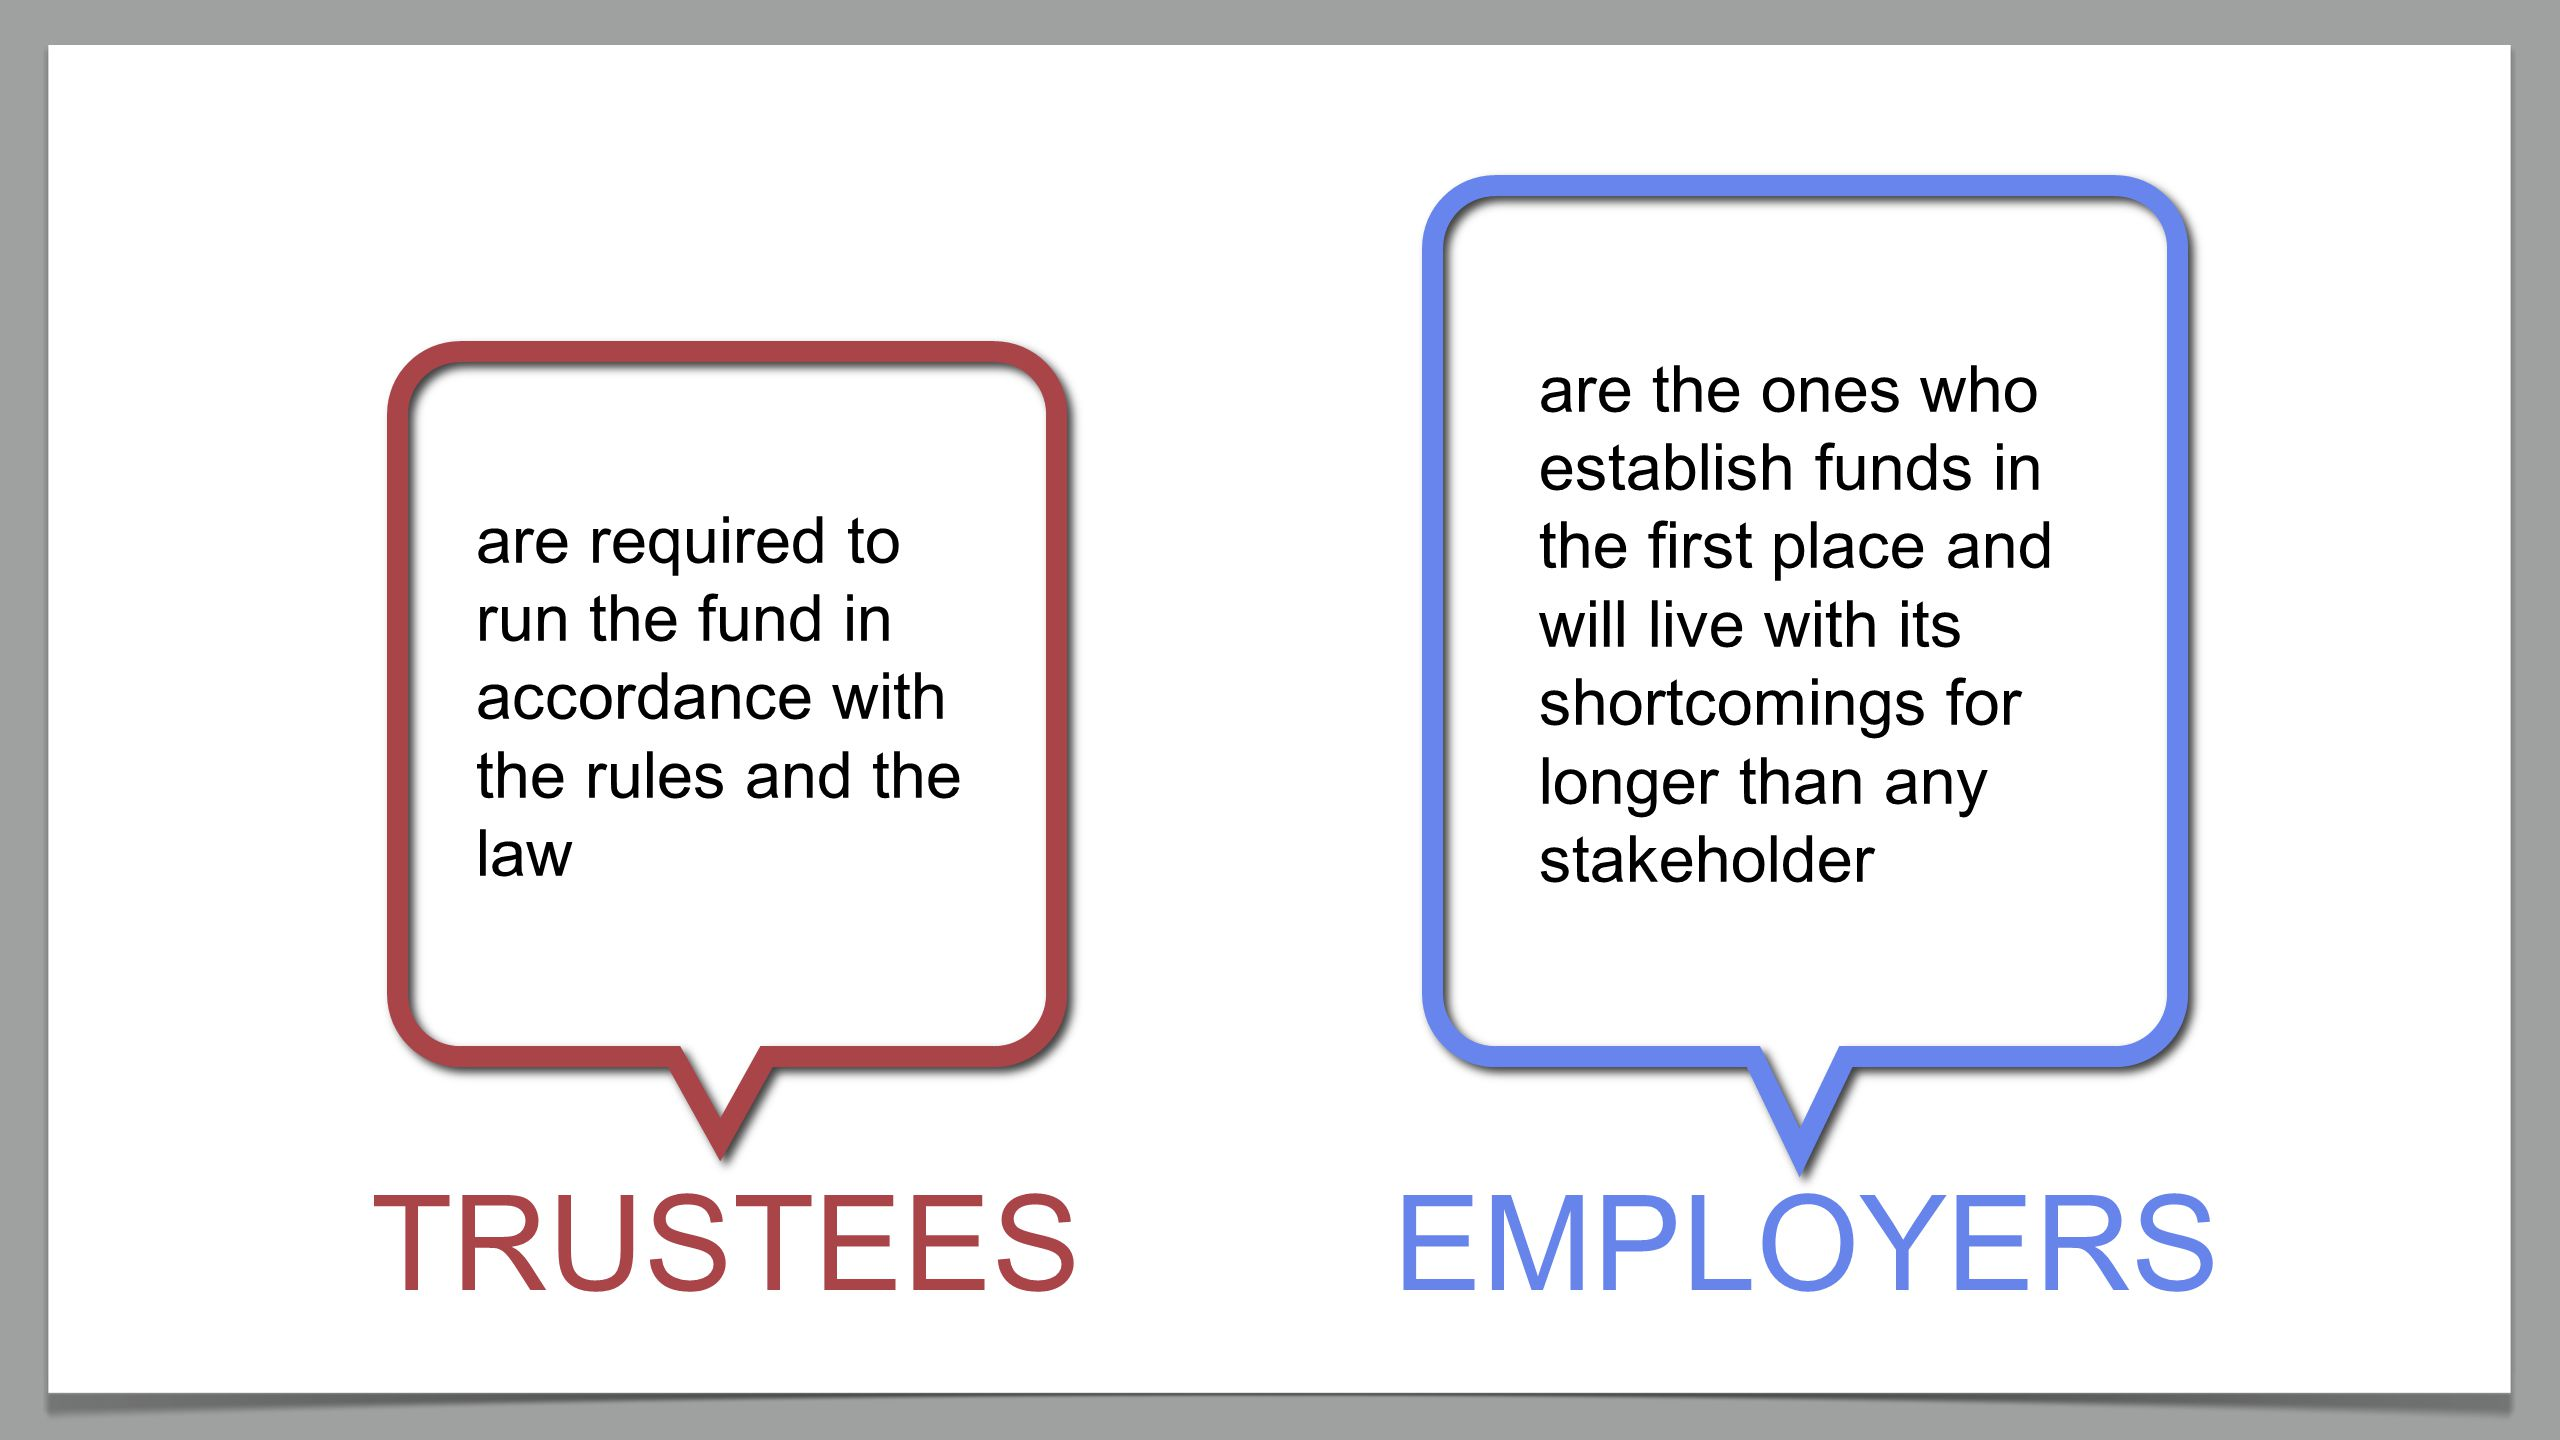 EMPLOYERSTRUSTEES are required to run the fund in accordance with the rules and the law are the ones who establish funds in the first place and will live with its shortcomings for longer than any stakeholder